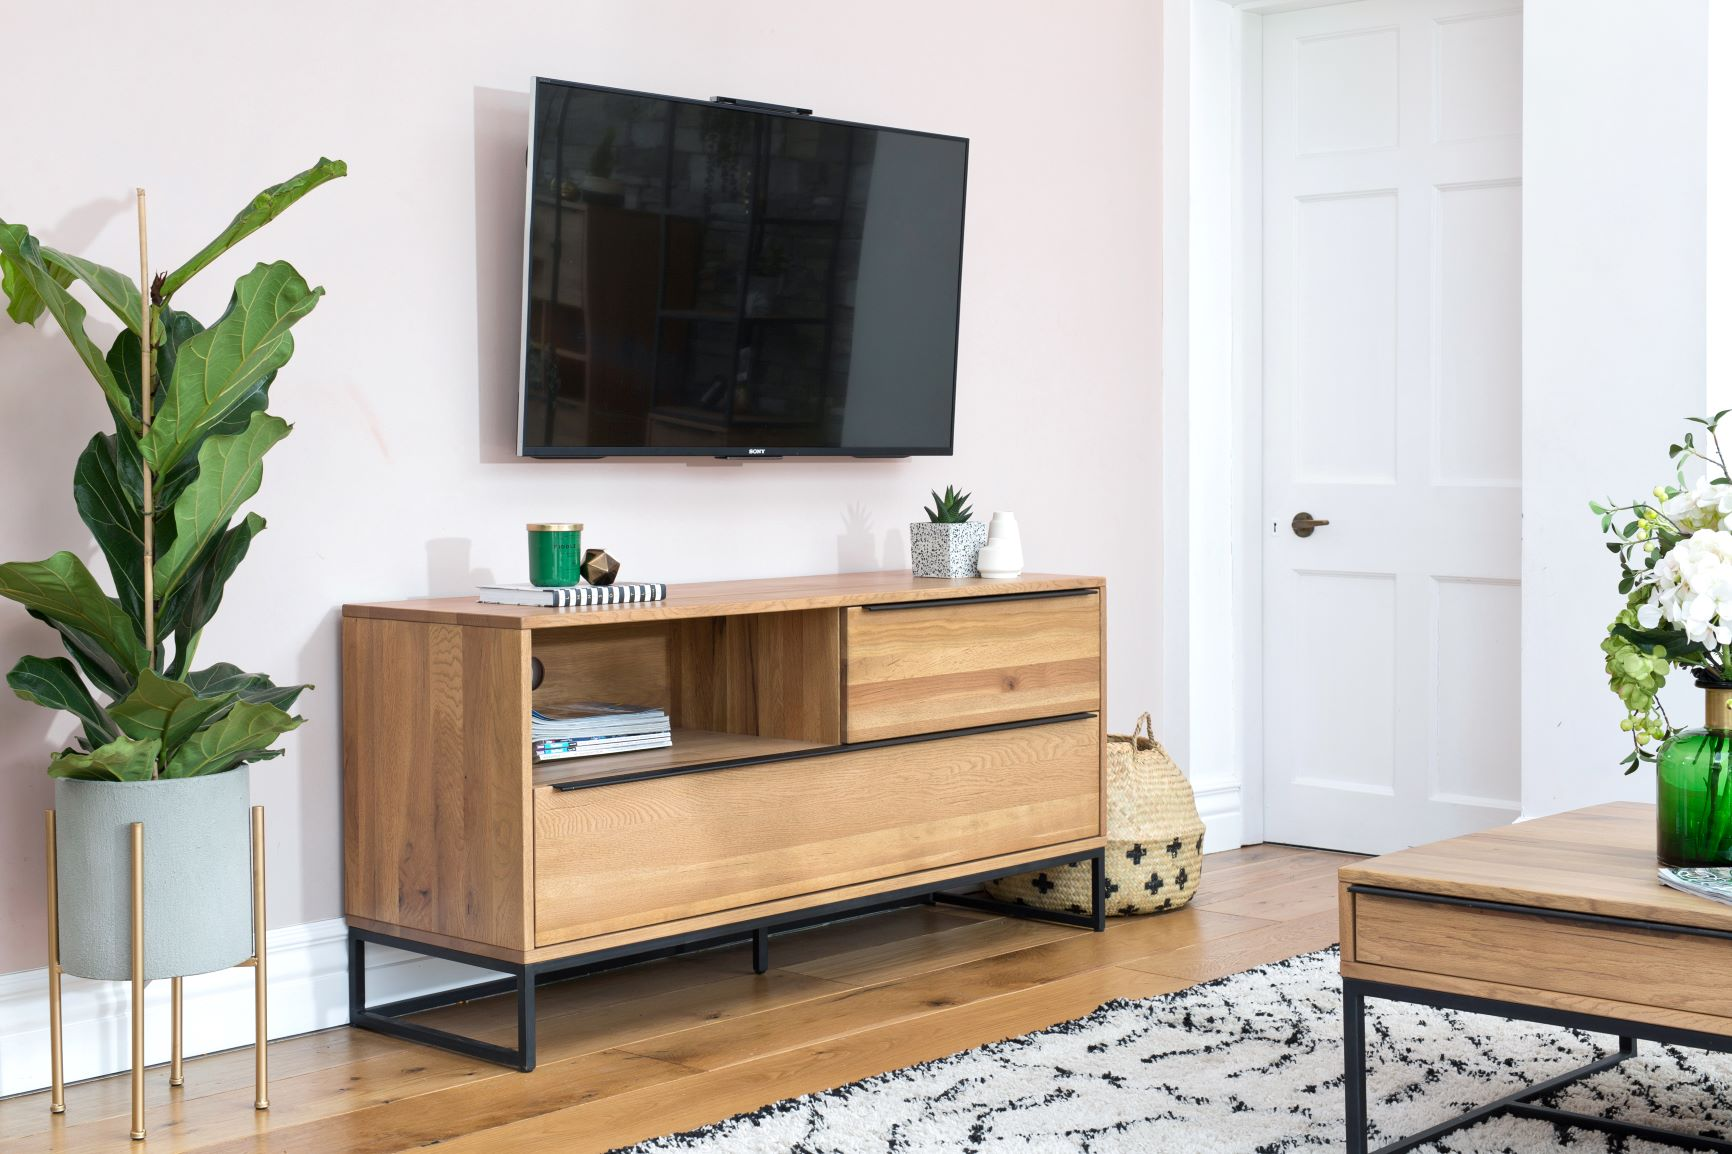 HAMBURG TV UNIT - L144cm x D45cm x H69cm